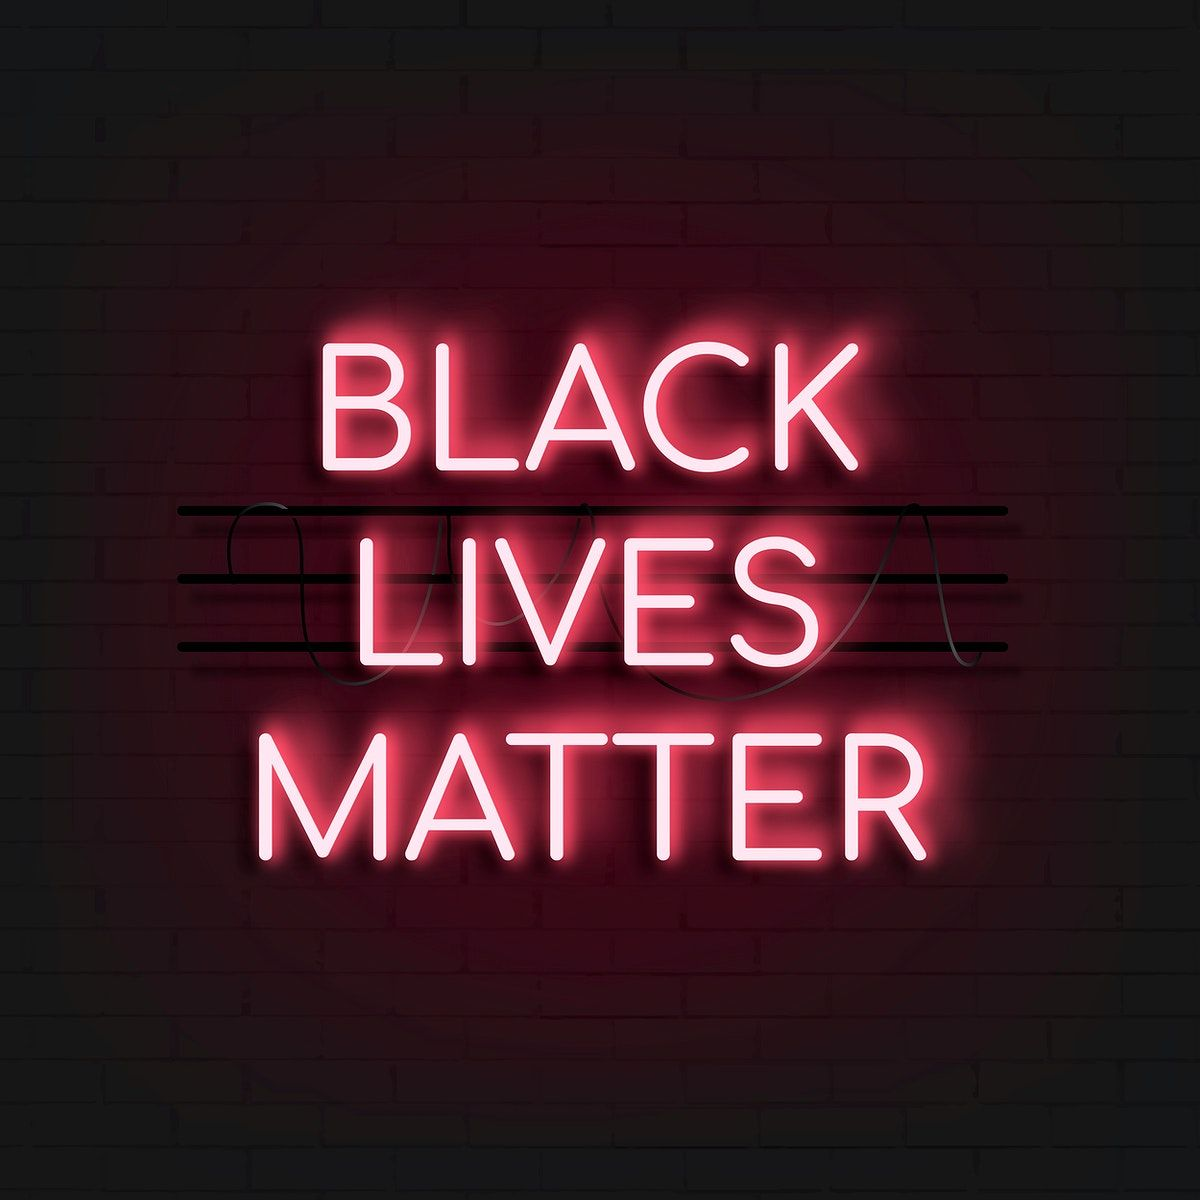 Pin on Black Lives Matter